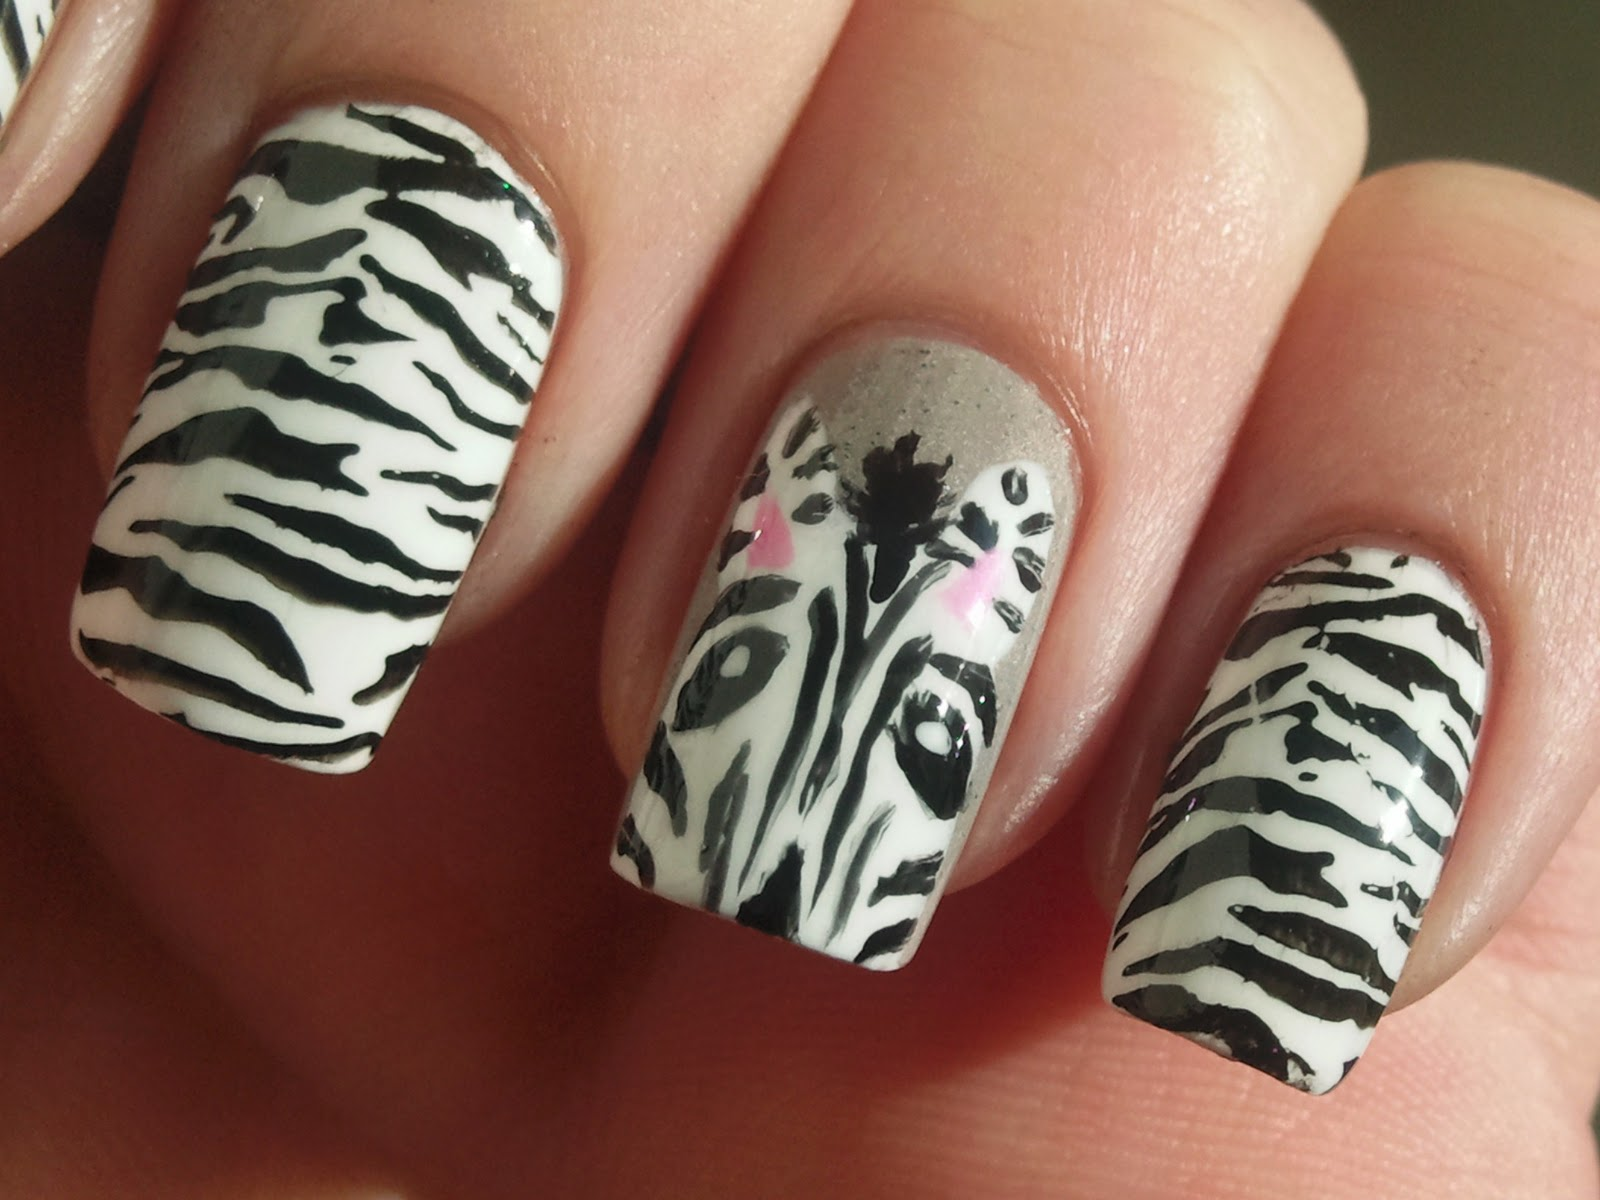 zebra nail designs acrylic nails tattoos photos design gallery nail art design ideas collection. Black Bedroom Furniture Sets. Home Design Ideas